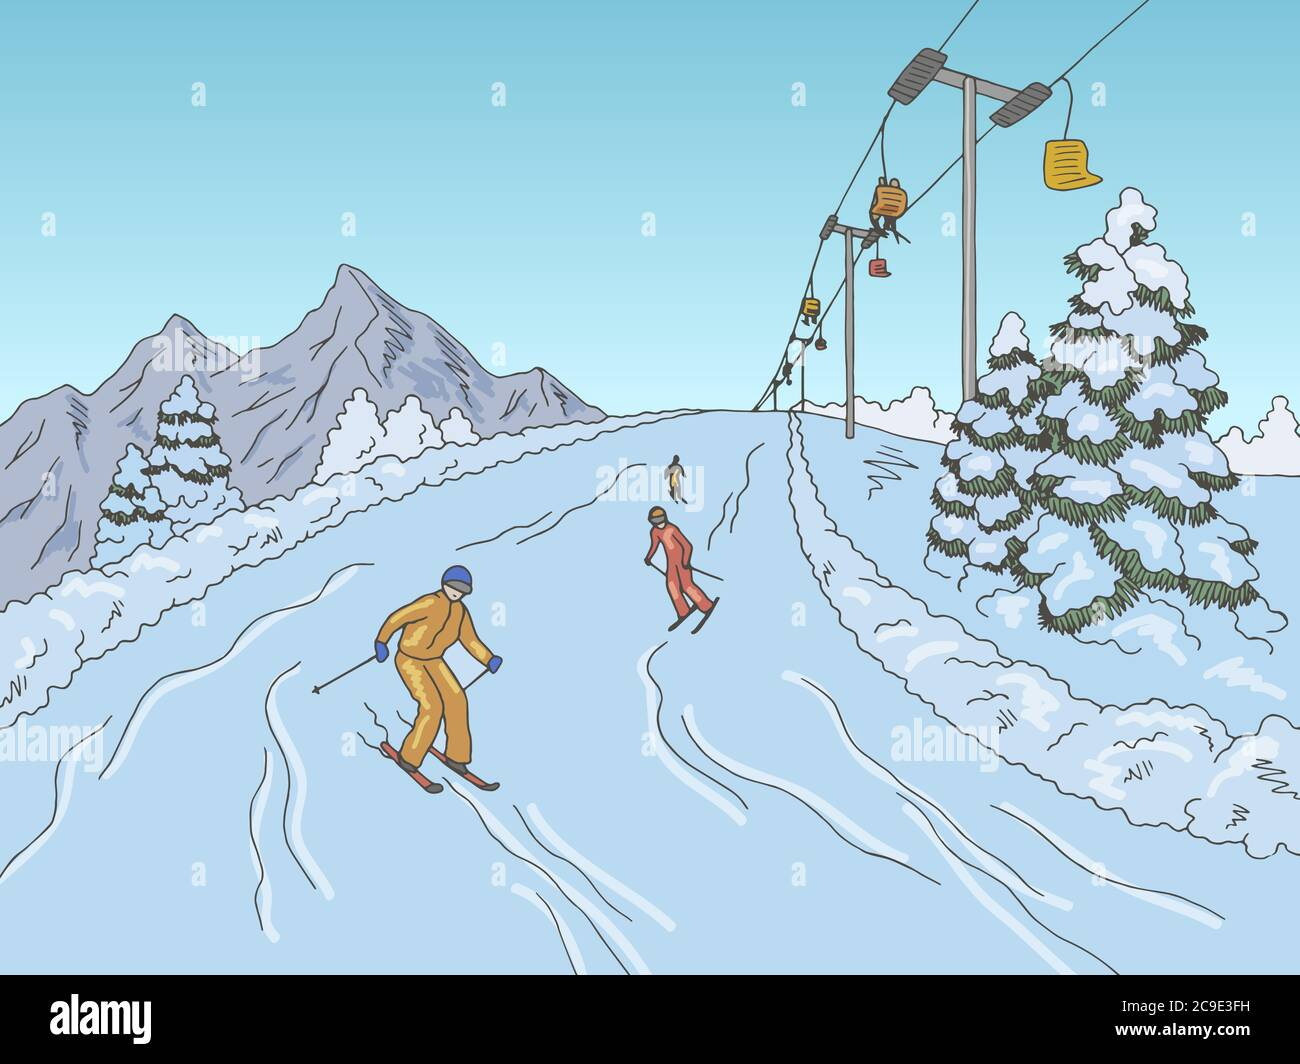 Snow Skiing Sketch High Resolution Stock Photography And Images Alamy